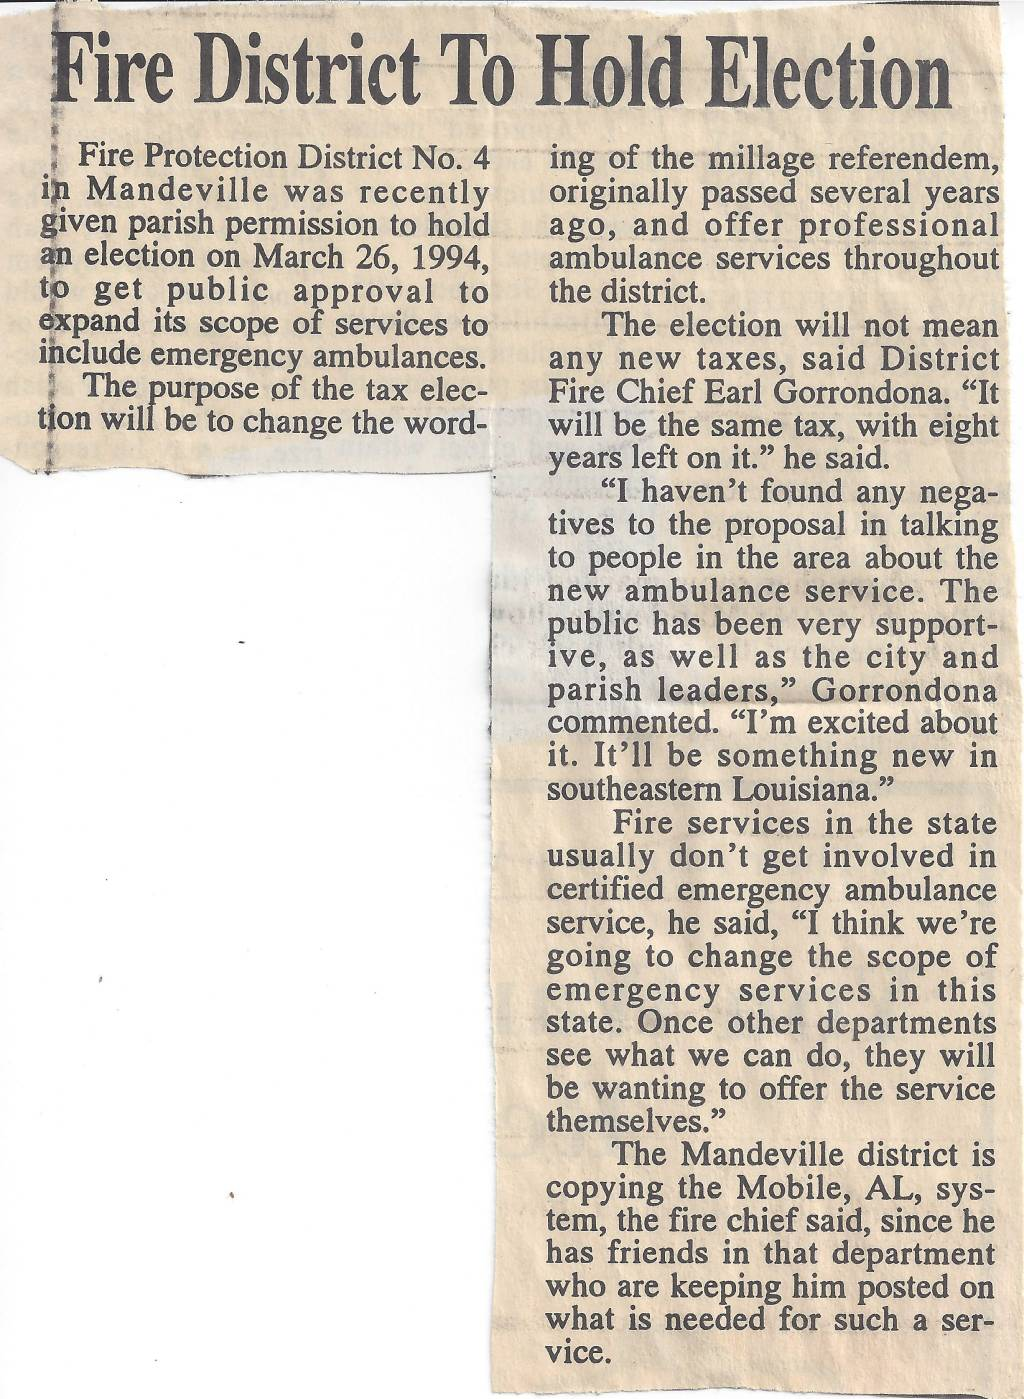 Is Fire District 4's Ambulance Service Self-funding